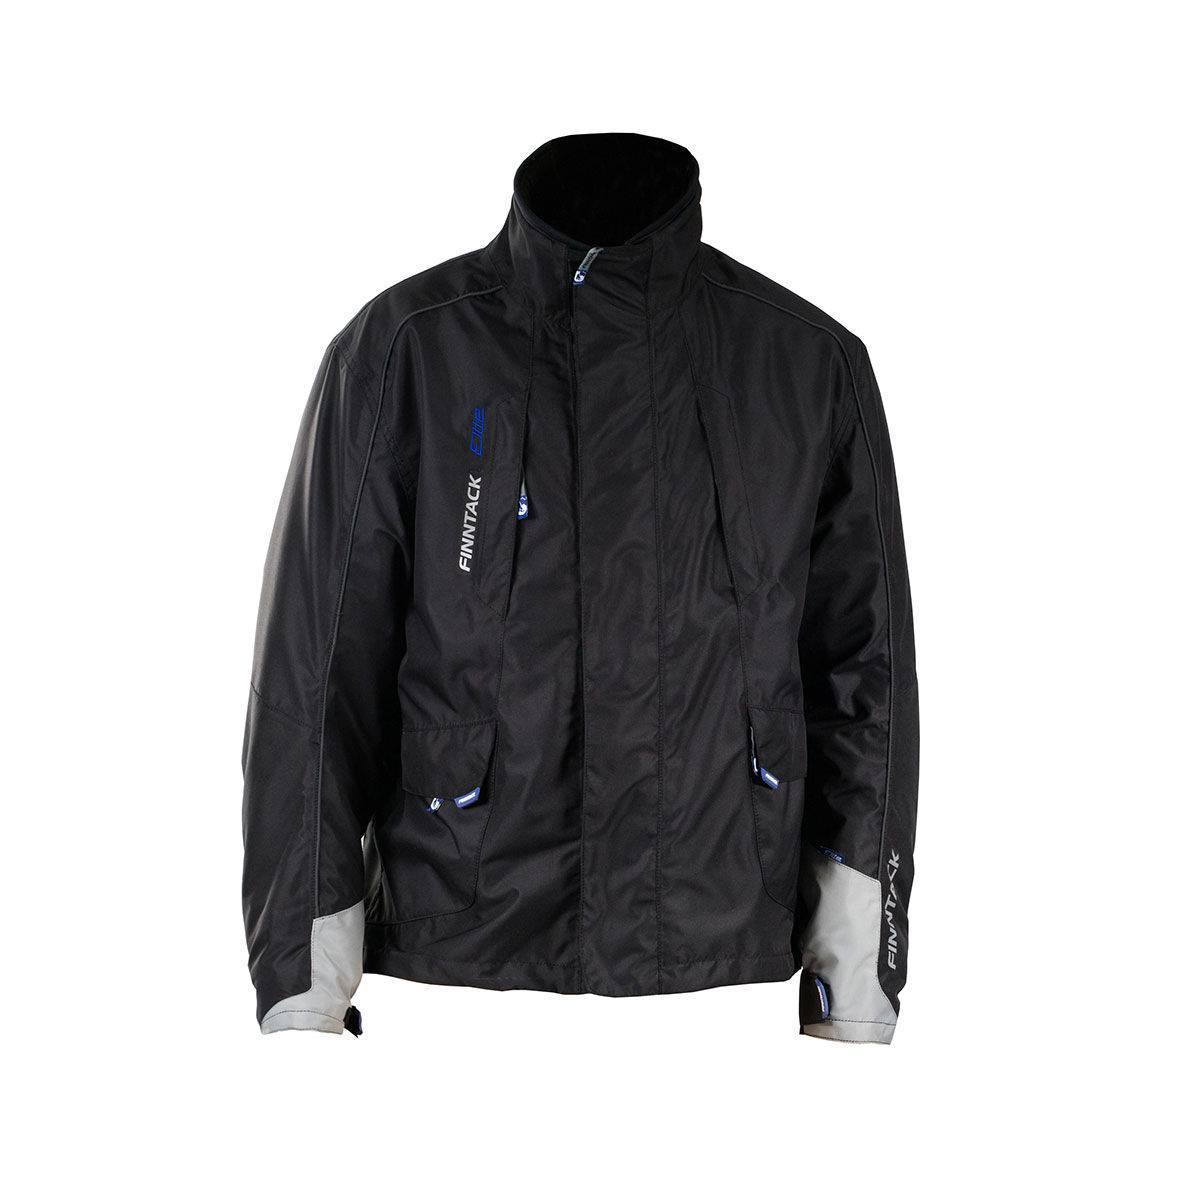 Finn-Tack Elite Winter Jacket - Unisex